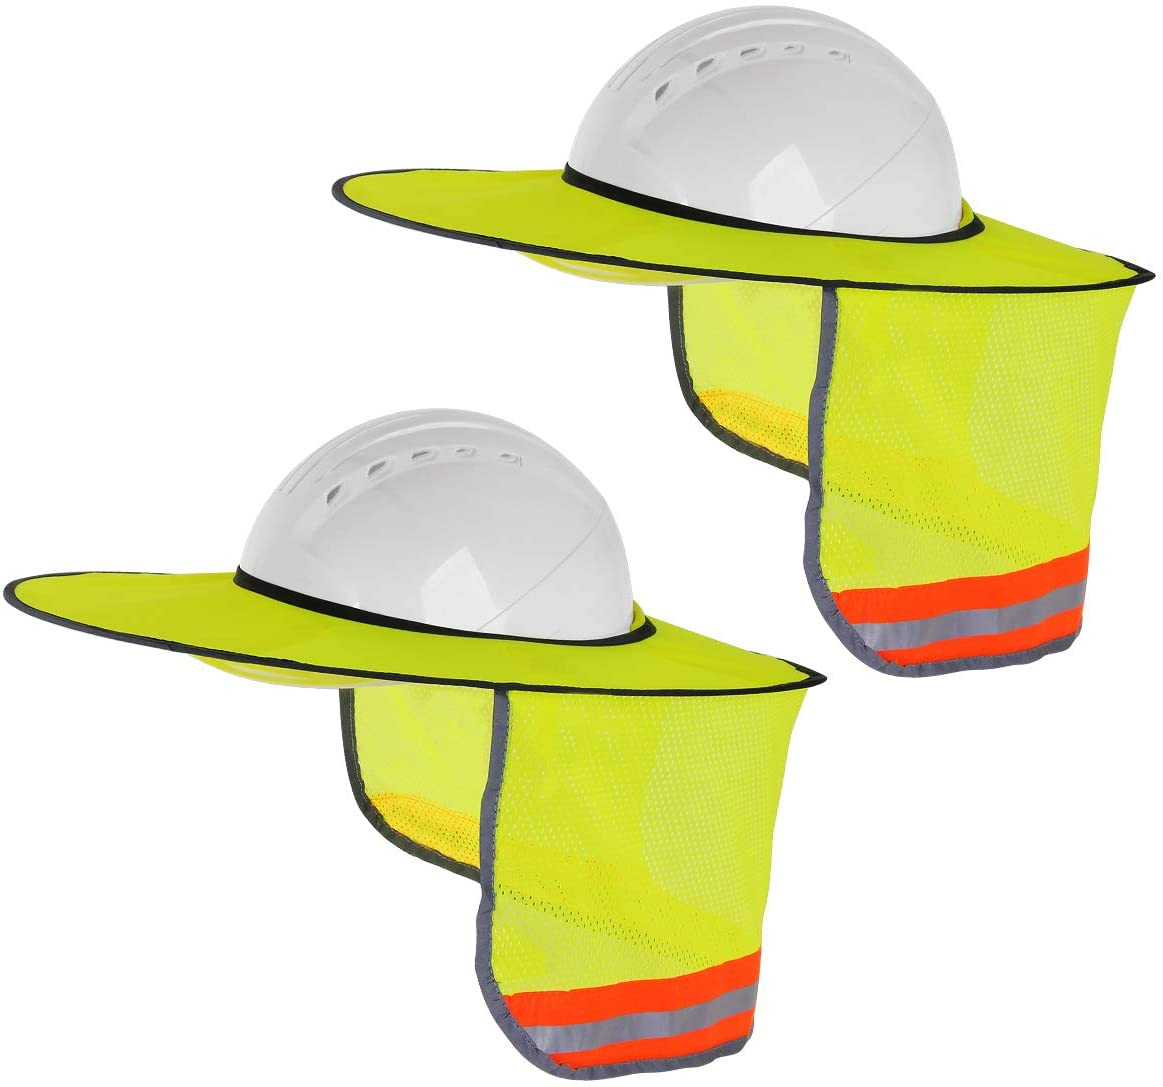 SunShade Hard Hat Accessory Attached Easily to Your Hard Hat New